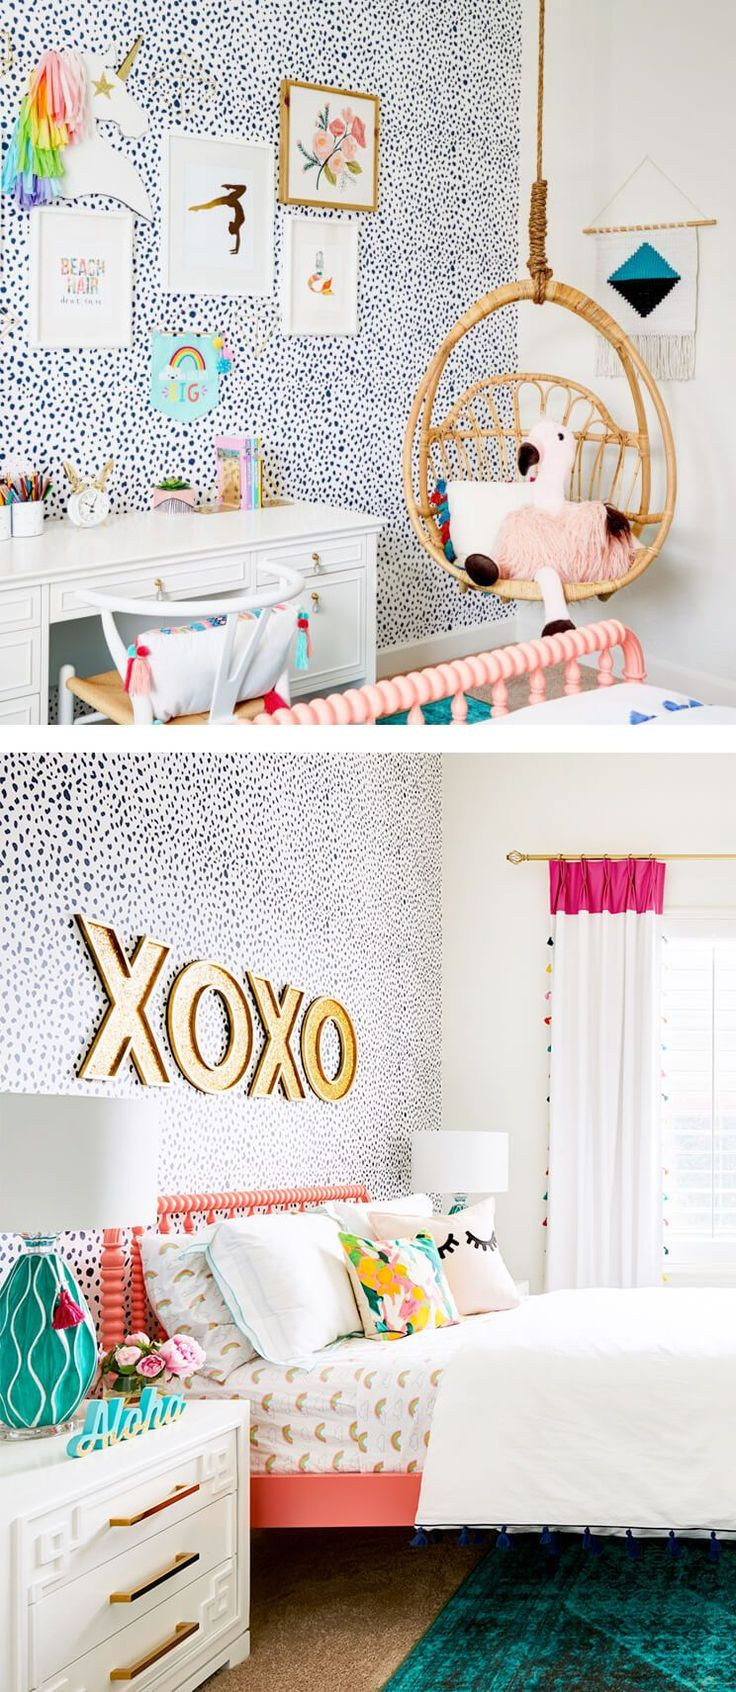 Kids room wallpaper trend predictions of 2019  Kids room wallpaper trend predictions of 2019 | Interior design trends – Livettes The post Kids room wallpaper trend predictions of 2019 appeared first on Woman Casual.